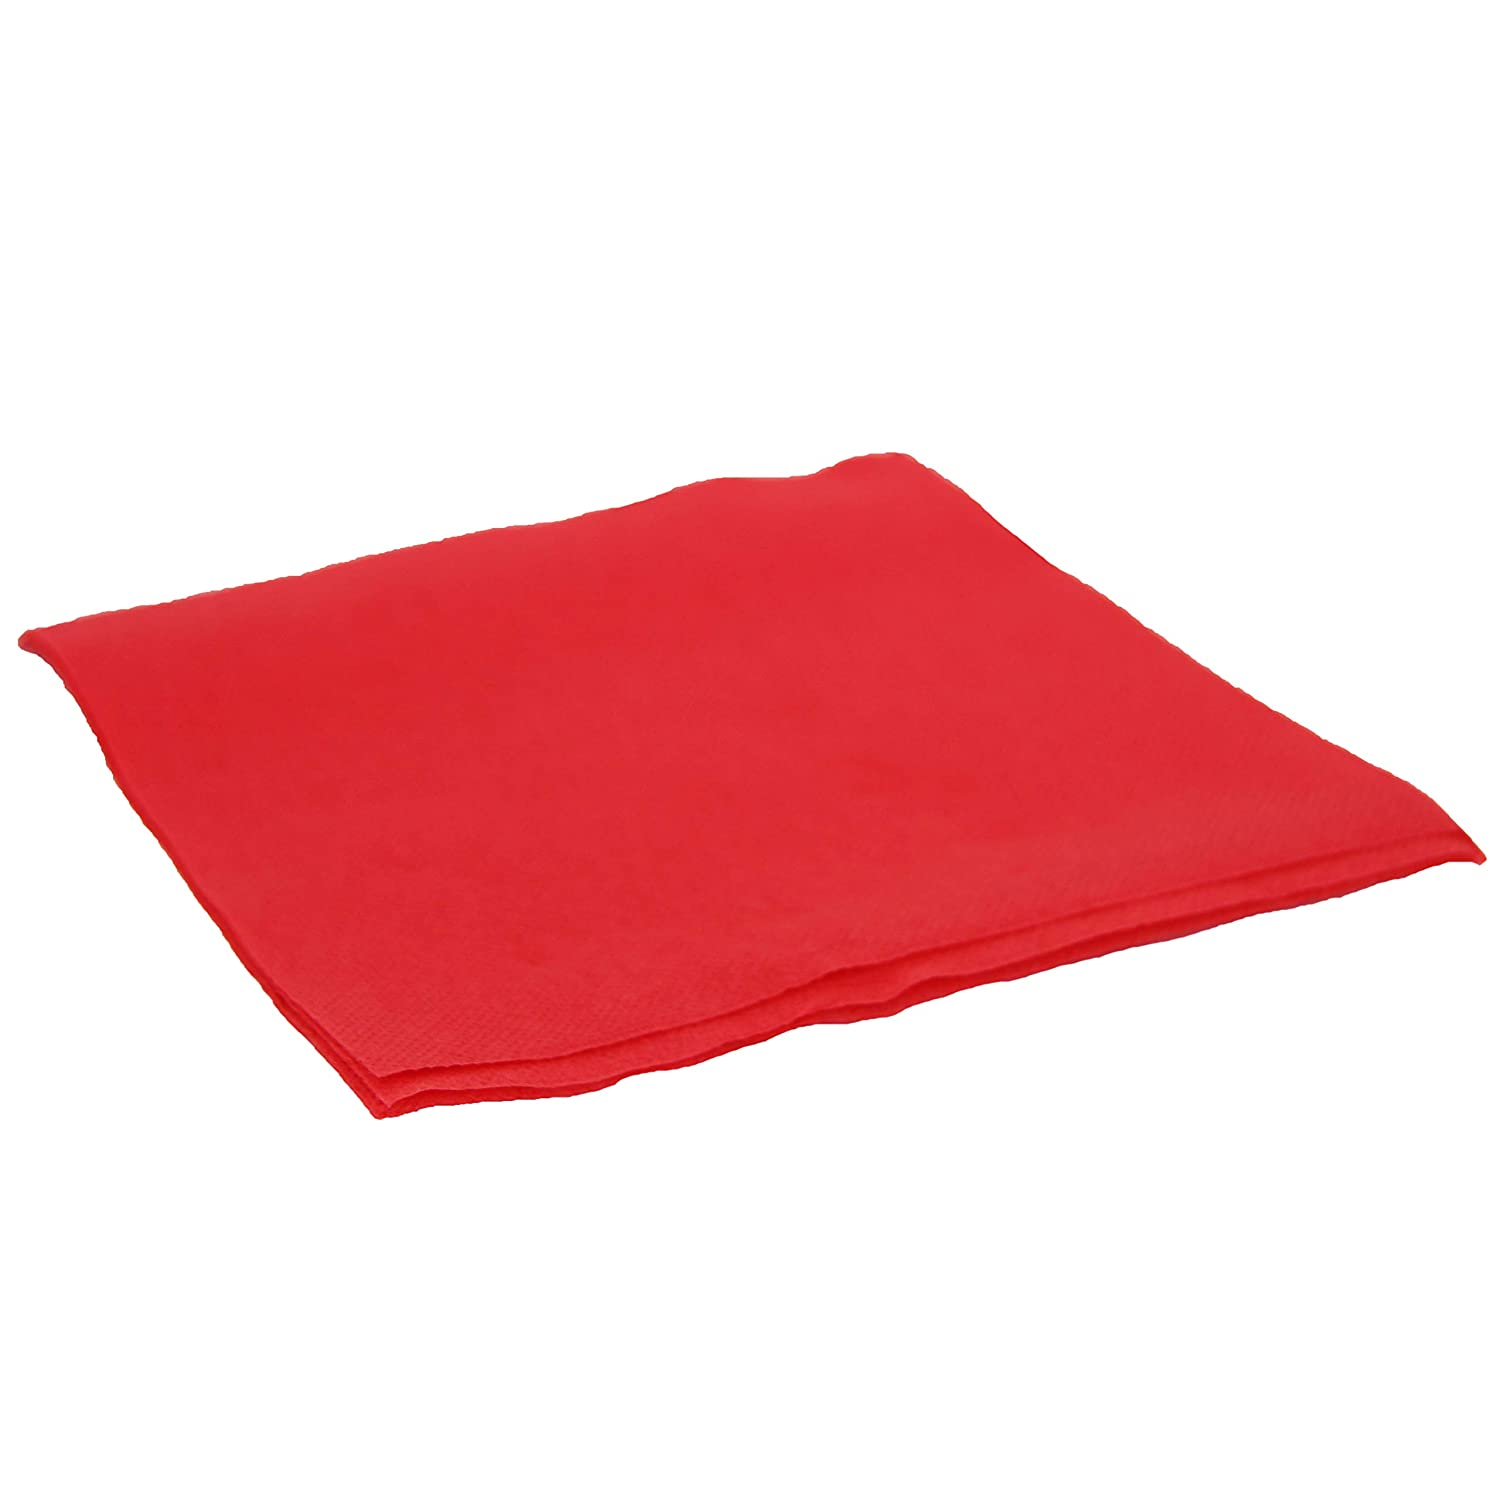 A Set of 100 Paper Napkins 33 x 33 cm Paper Napkin Double Point 2 Thickness Red